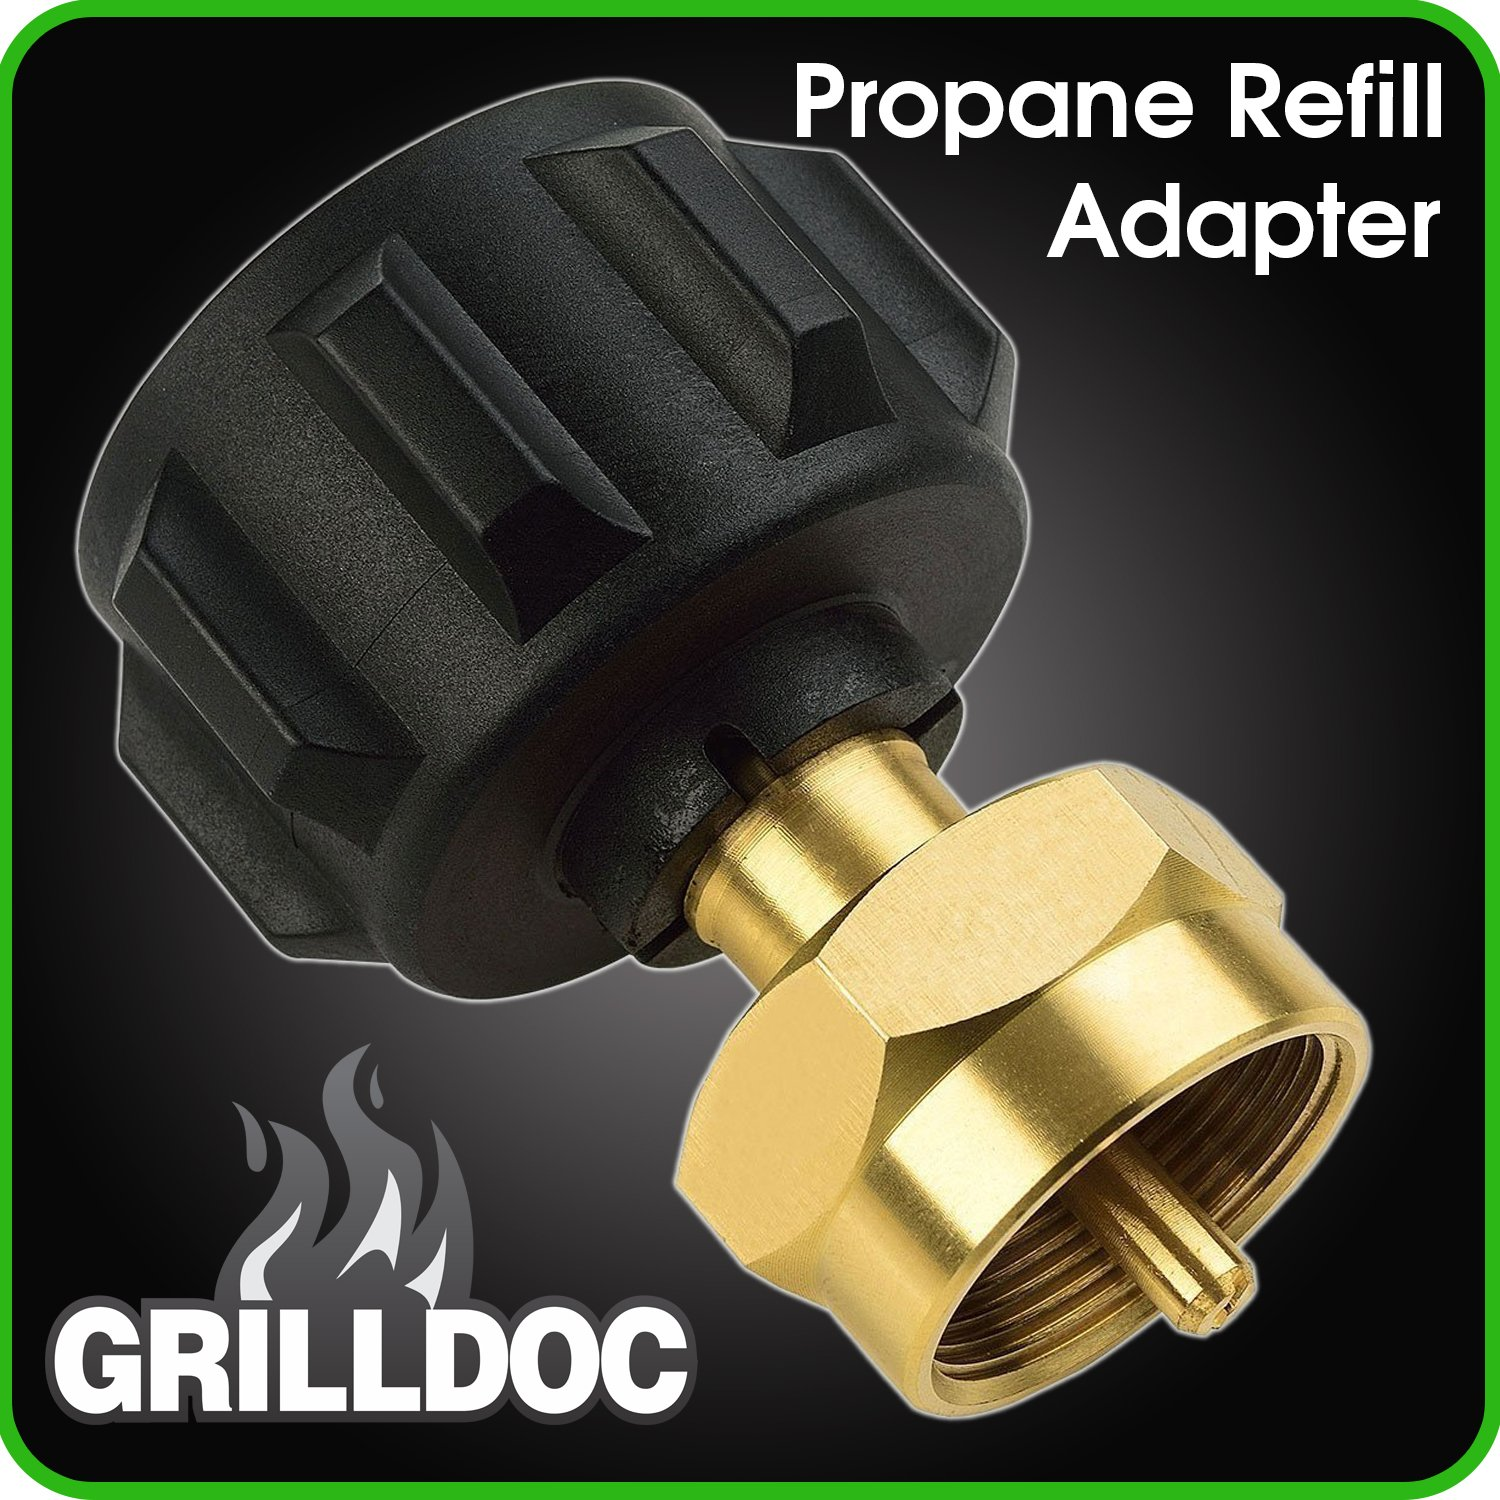 Propane Refill Adapter - Safest QCC1 Regulator Valve Propane Refill Adapter for Steel Propane Cylinder With Type 1 Onlyfire- Fits All 1 LB Throwaway Disposable Cylinder by Grill Doc bubblebagdude